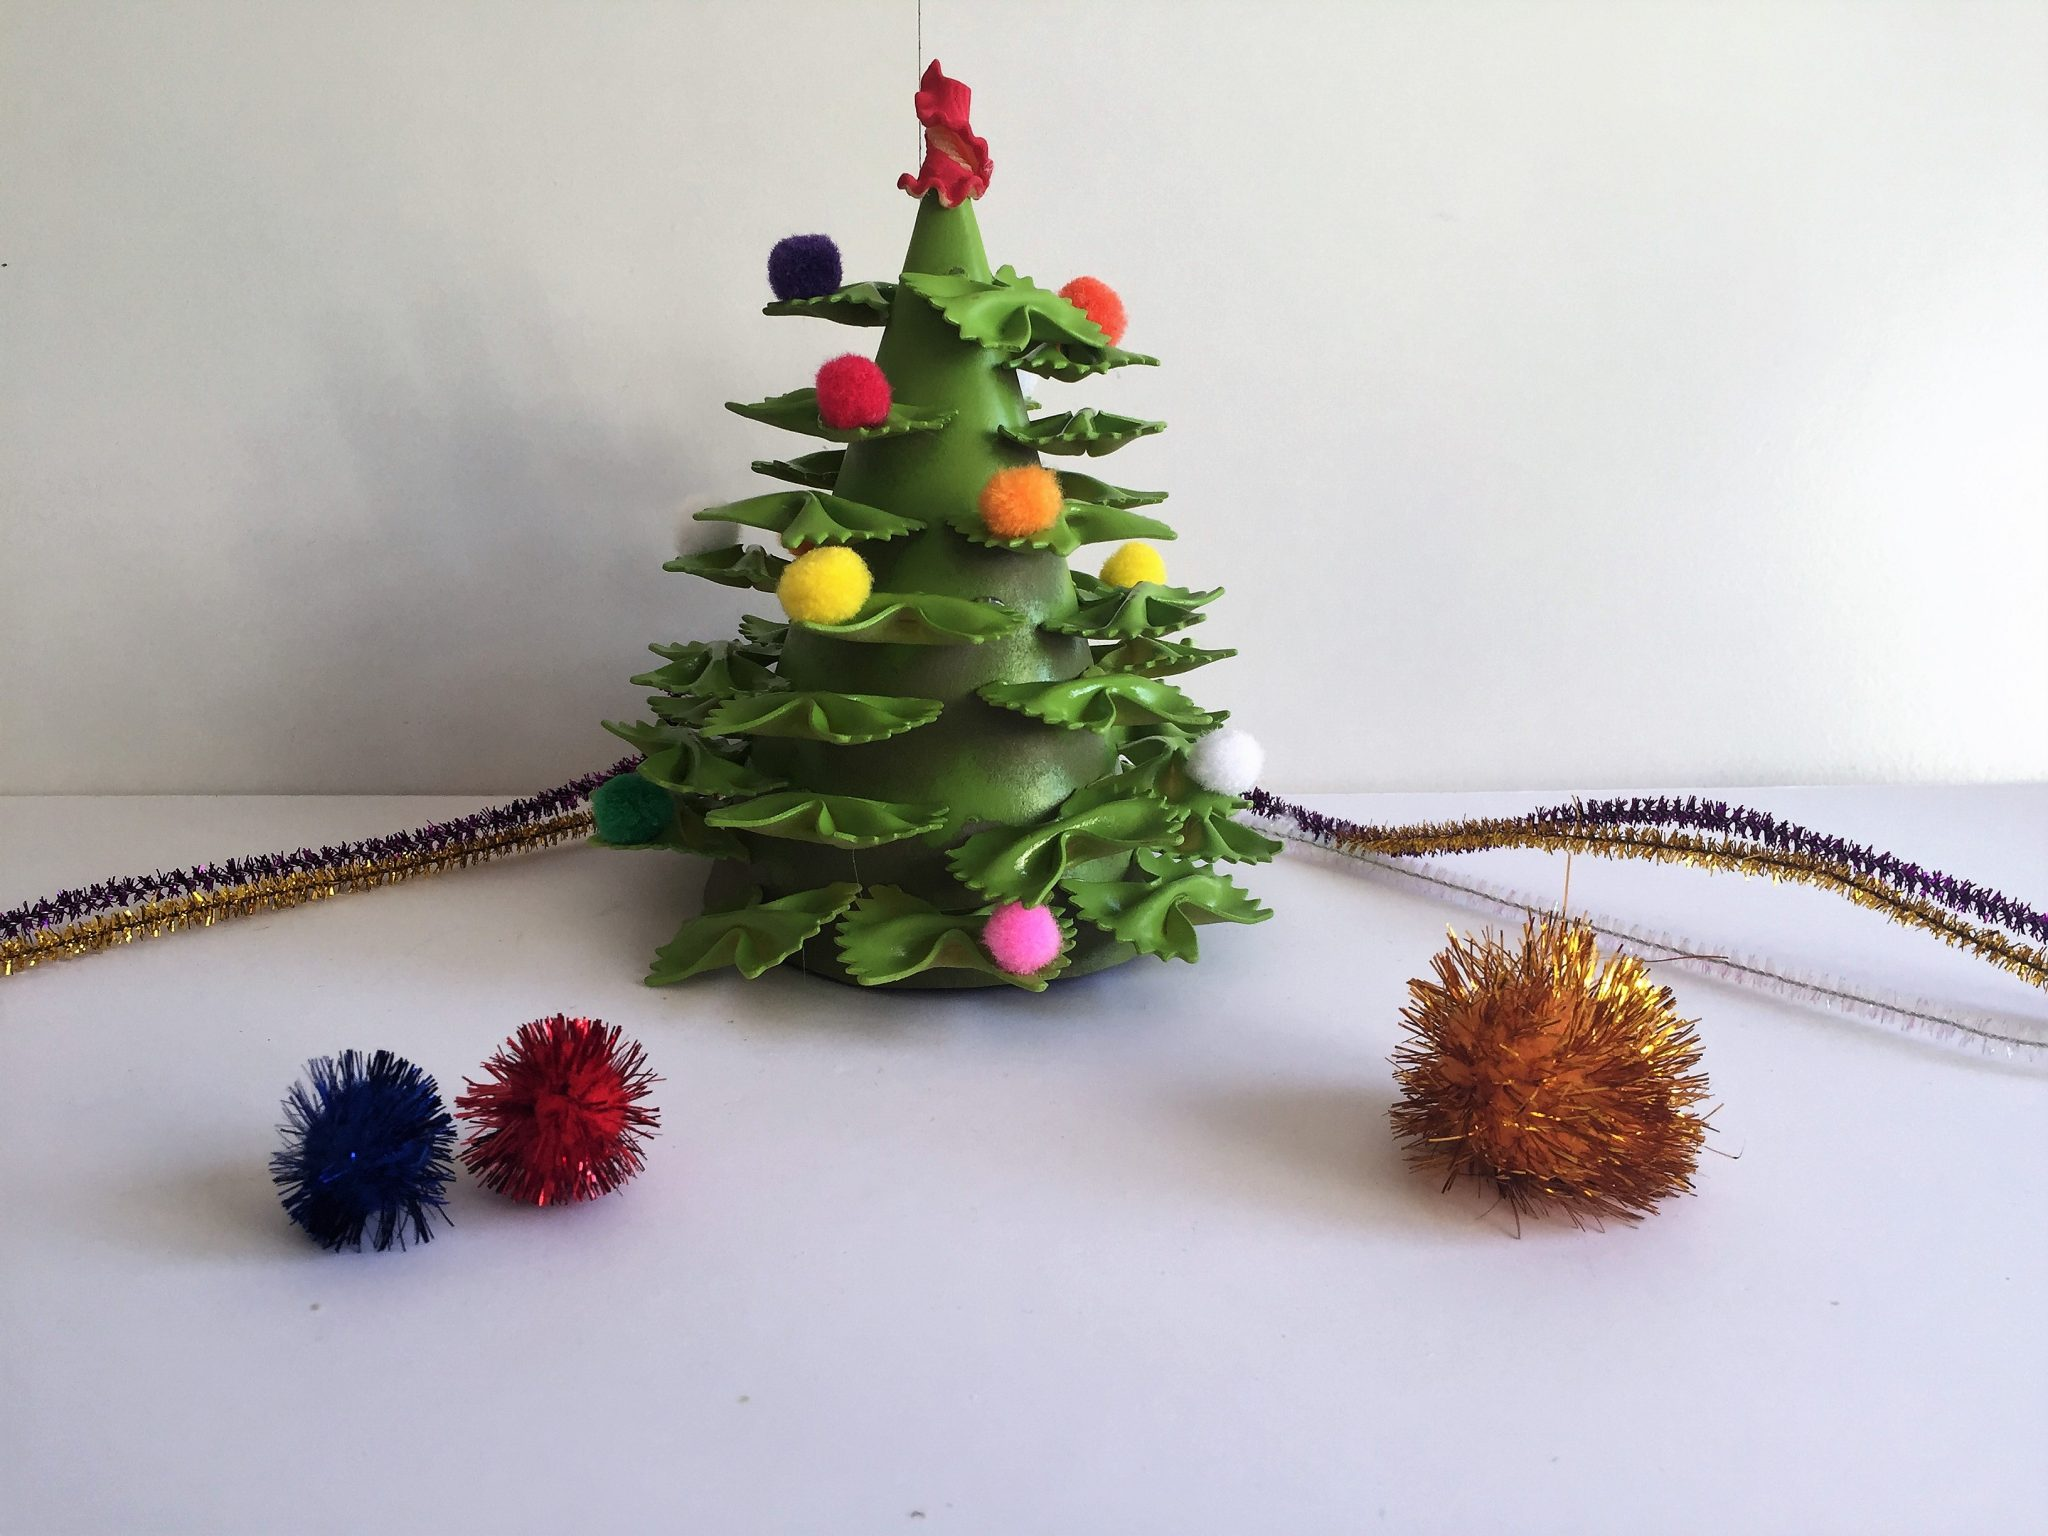 Christmas Tree crafts - Pasta Tree model